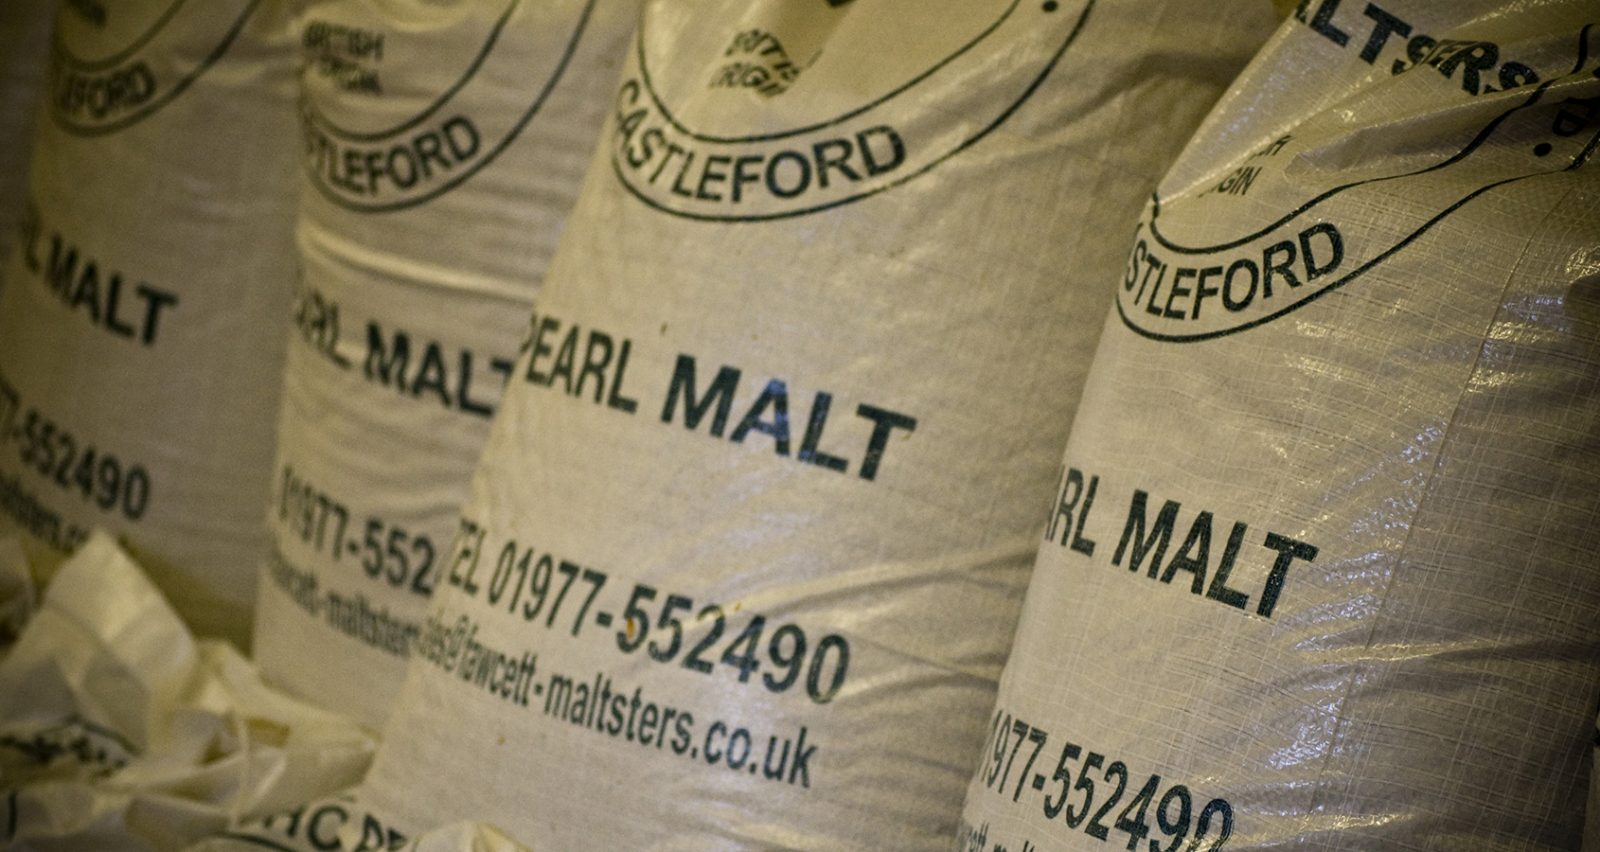 Malt at York Brewery